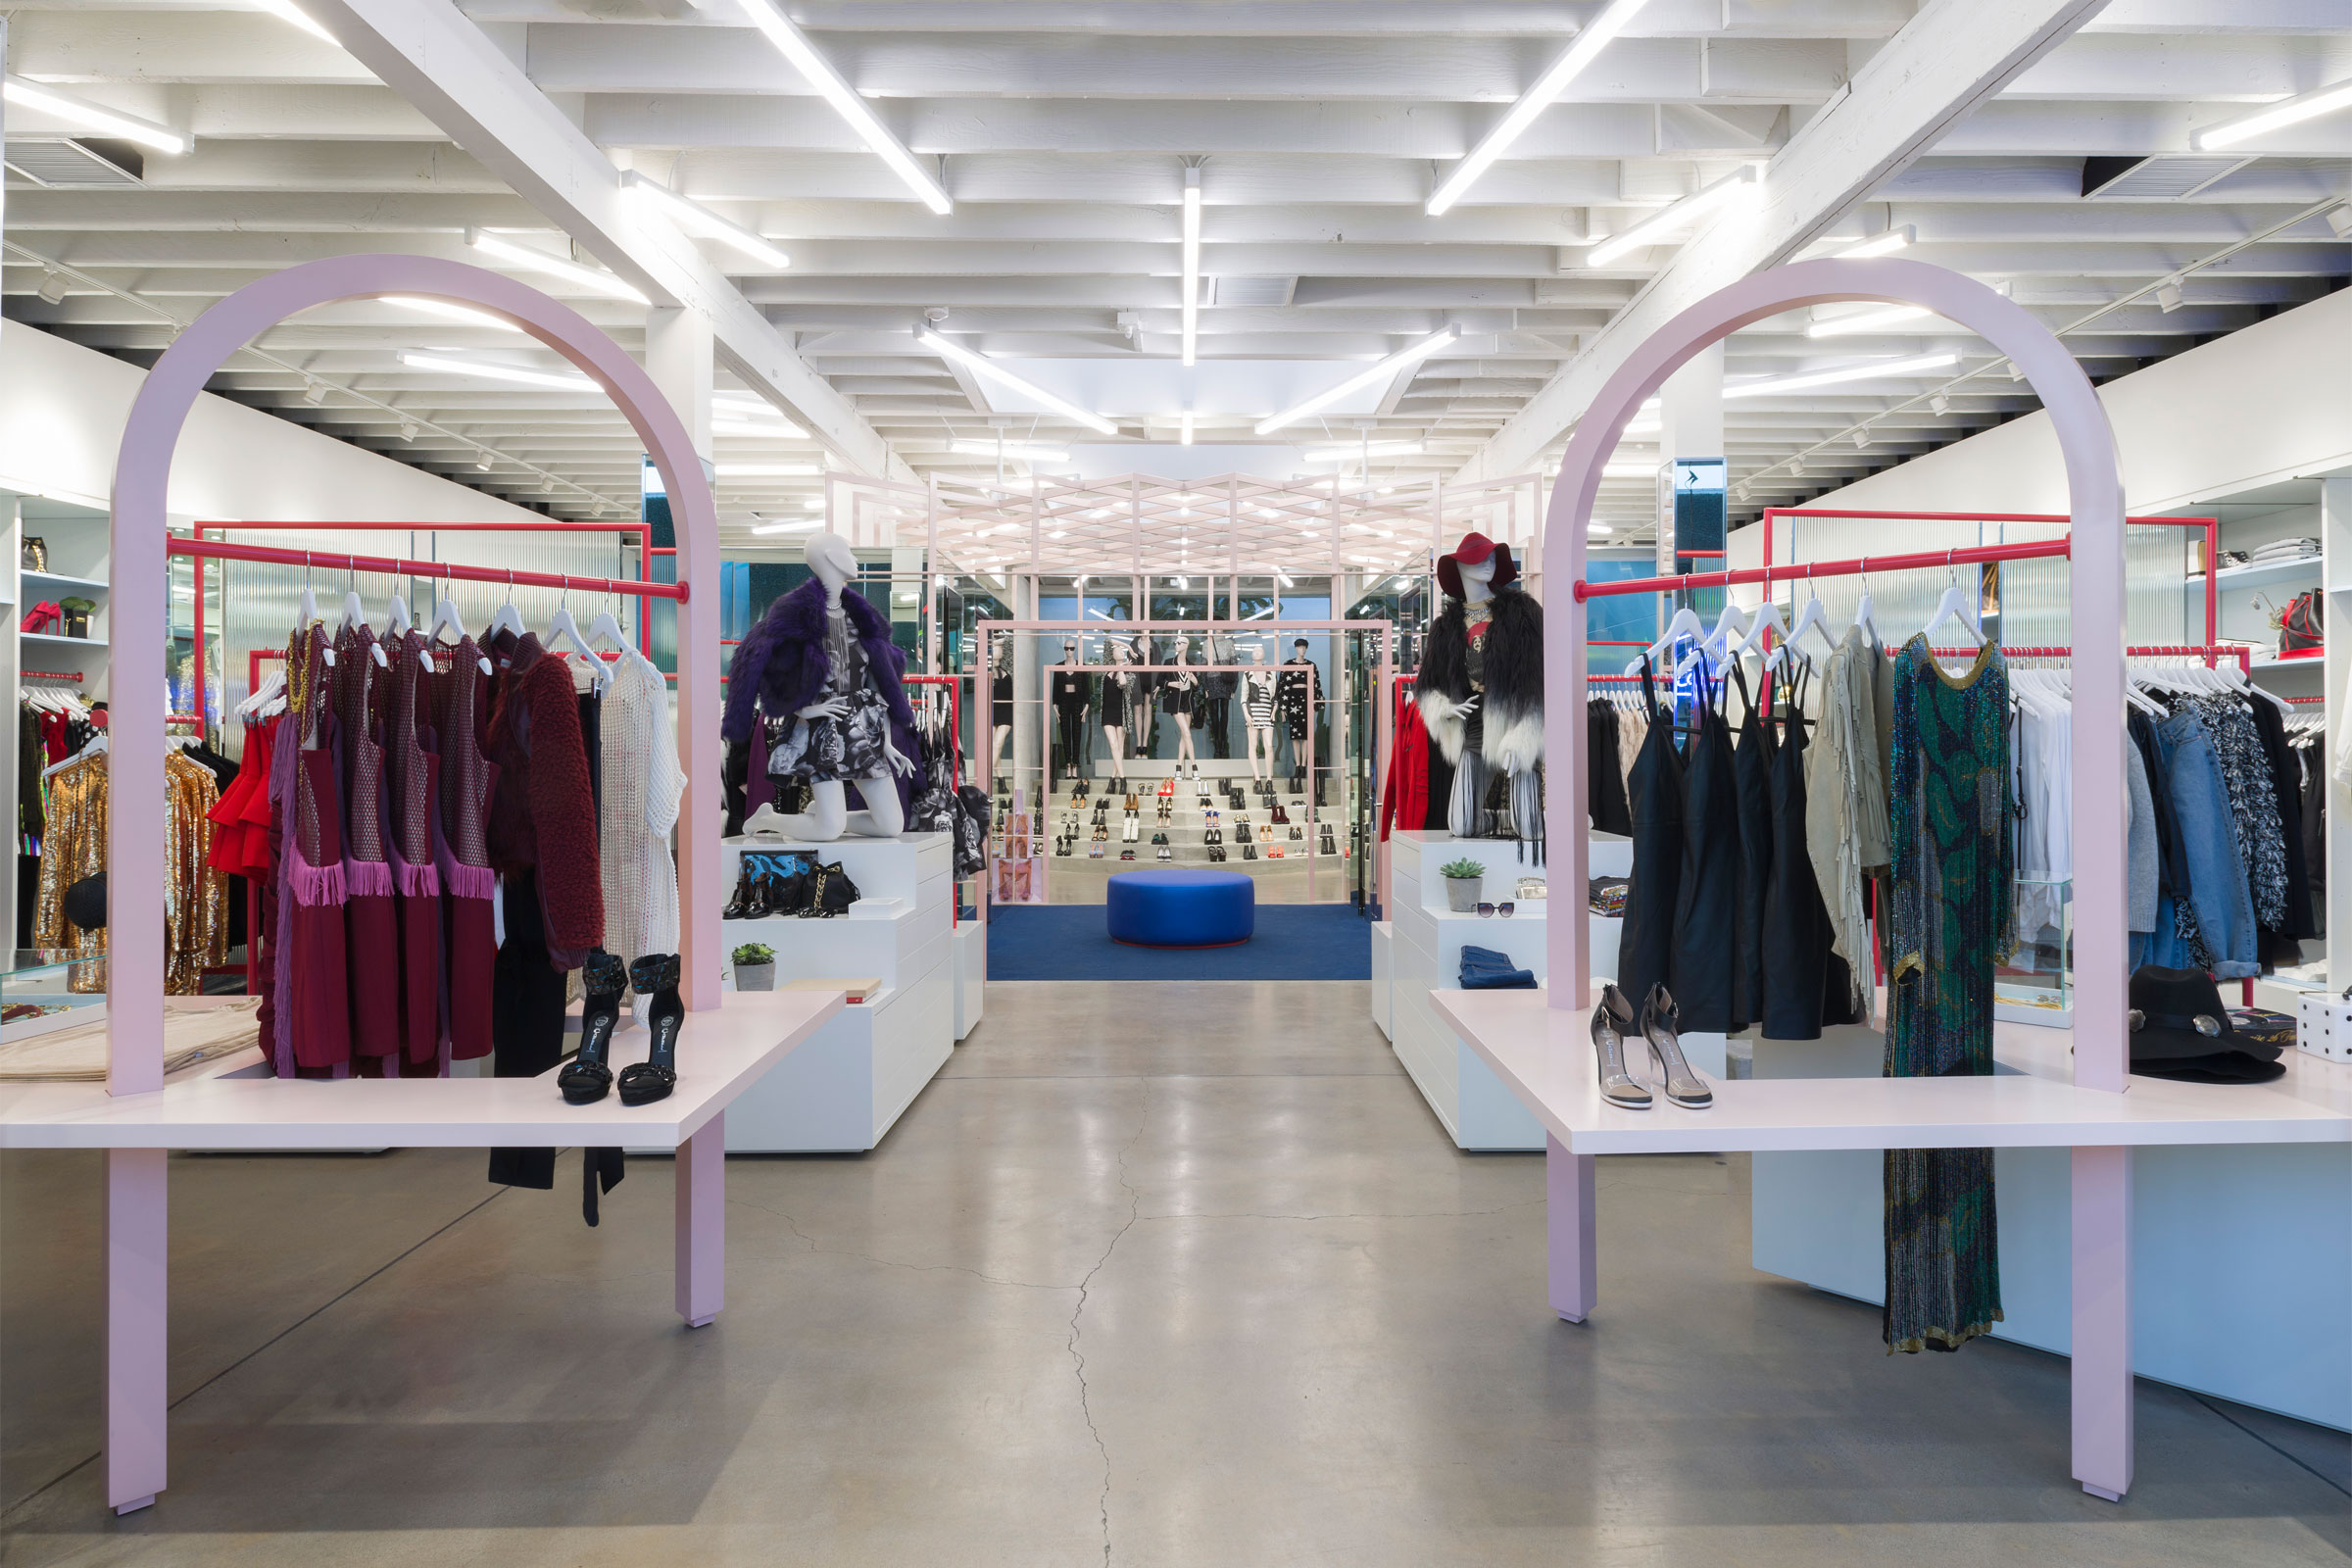 Now, Nasty Gal is opening brick-and-mortar locations to rival fast-fashion stores like Forever 21, H&M, and Zara. But as the brand looks towards brick-and-mortar shops as its future, competition.